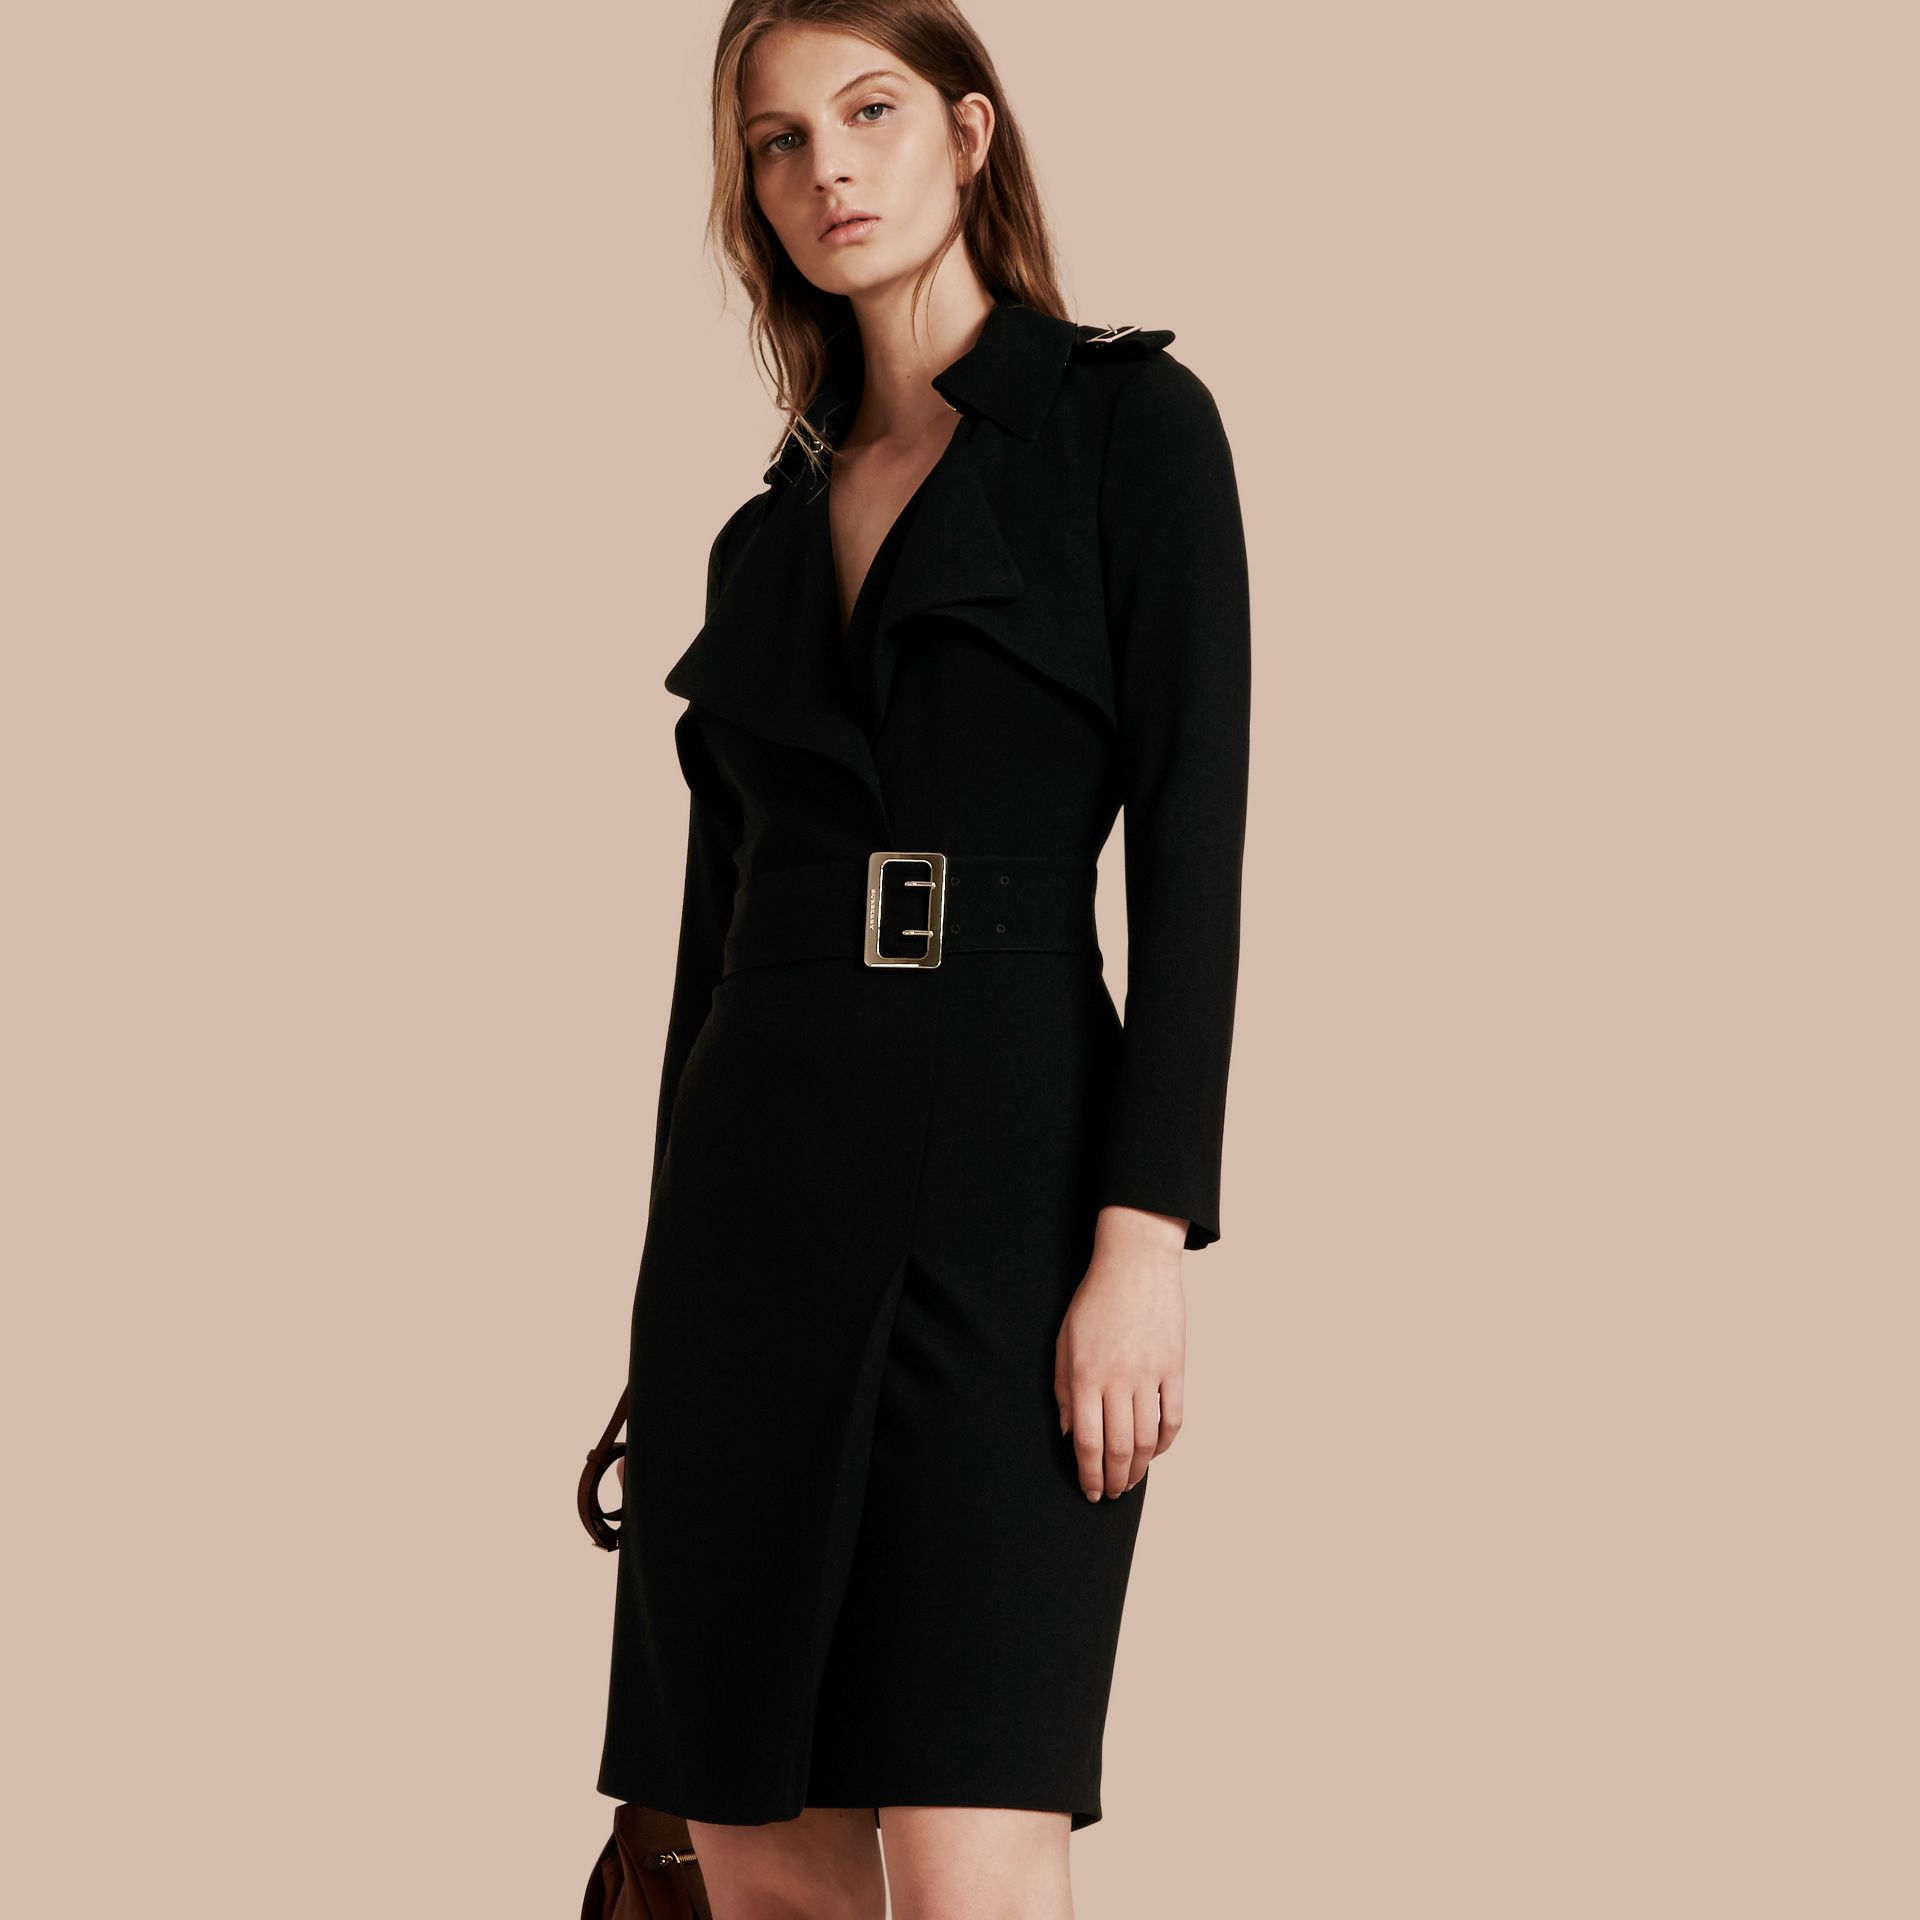 Black Buckle Detail Satin-back Crepe Trench Dress Black - gallery image 1